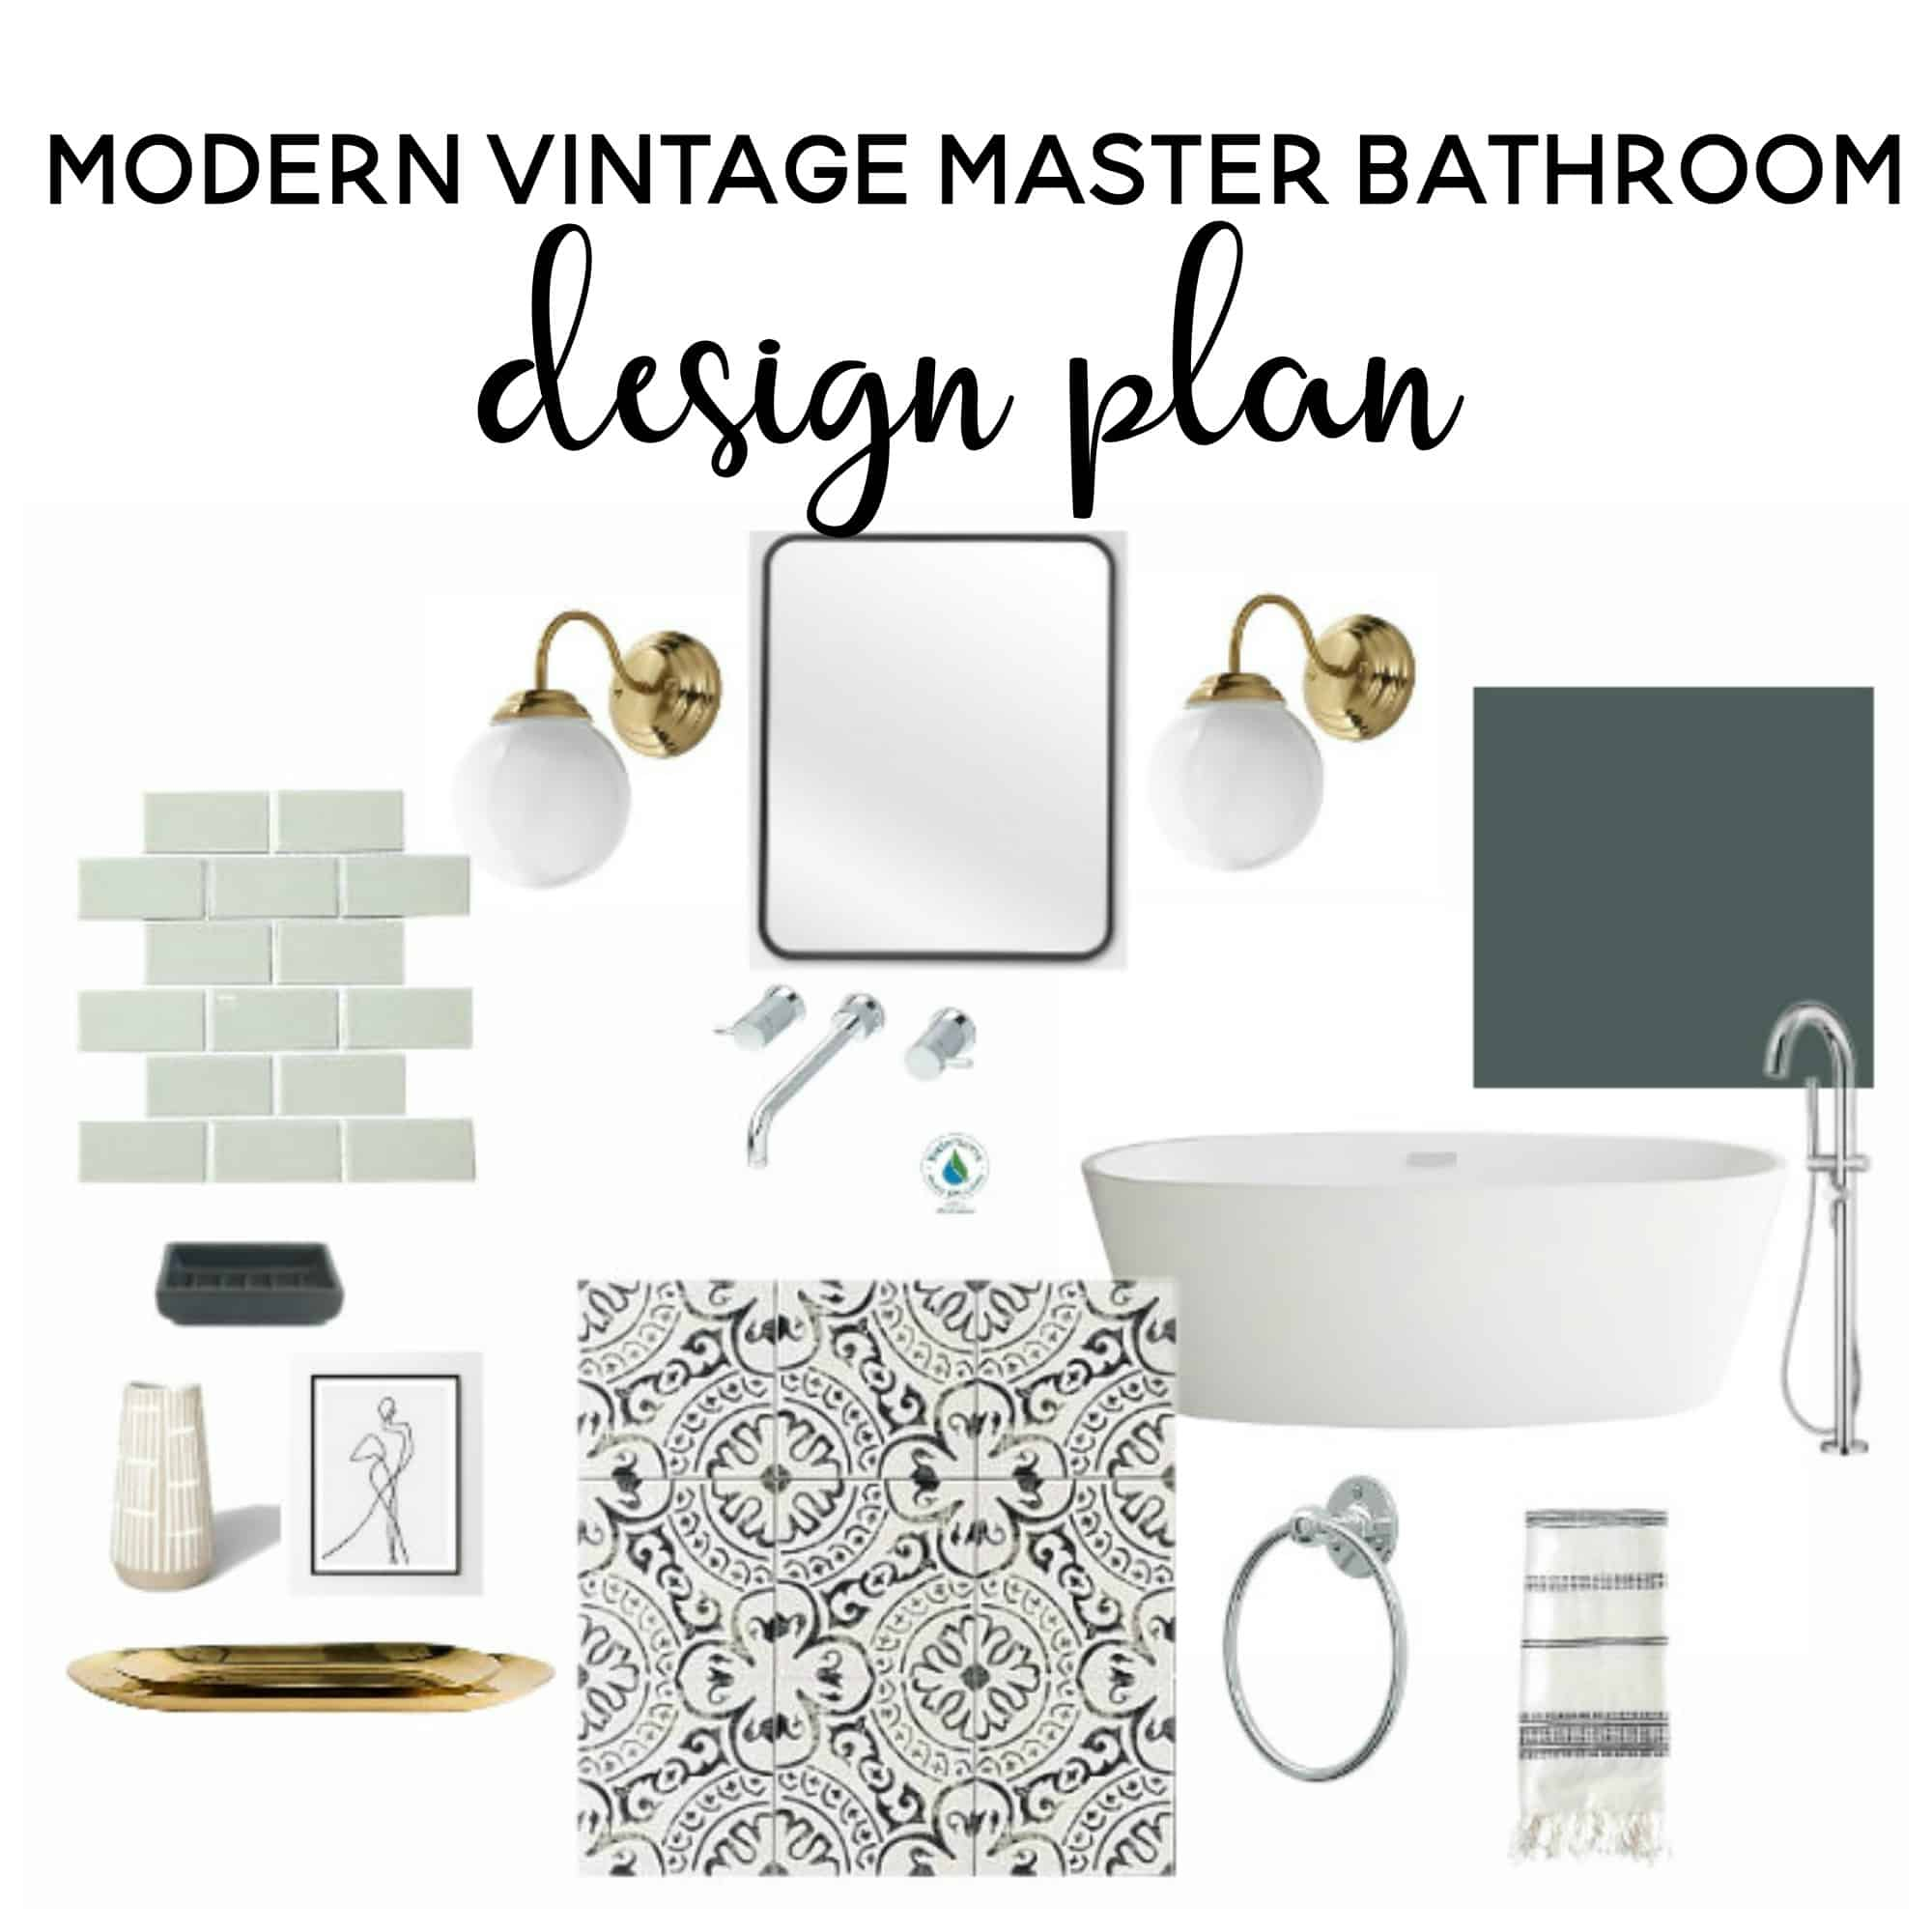 Modern Vintage Master Bathroom Design Plan | Bathroom Ideas | Bathroom  Remodel | Bathroom Decor |